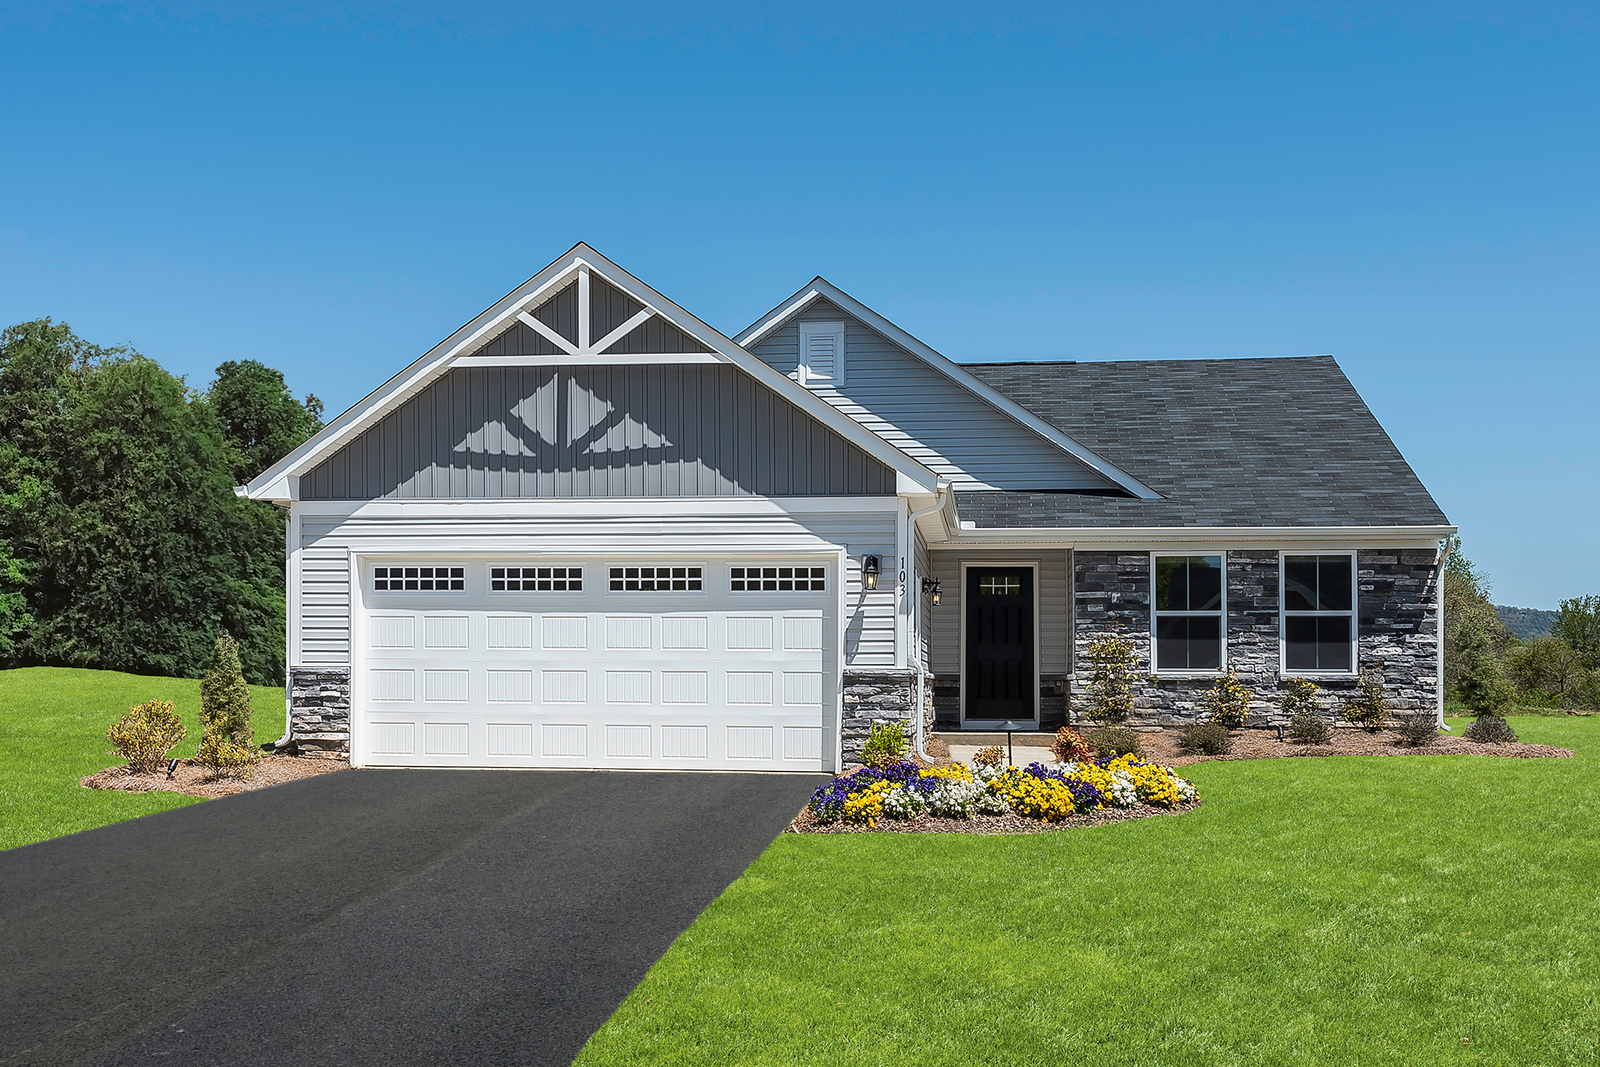 New Homes for sale at Willow Ridge in Penn Township, PA